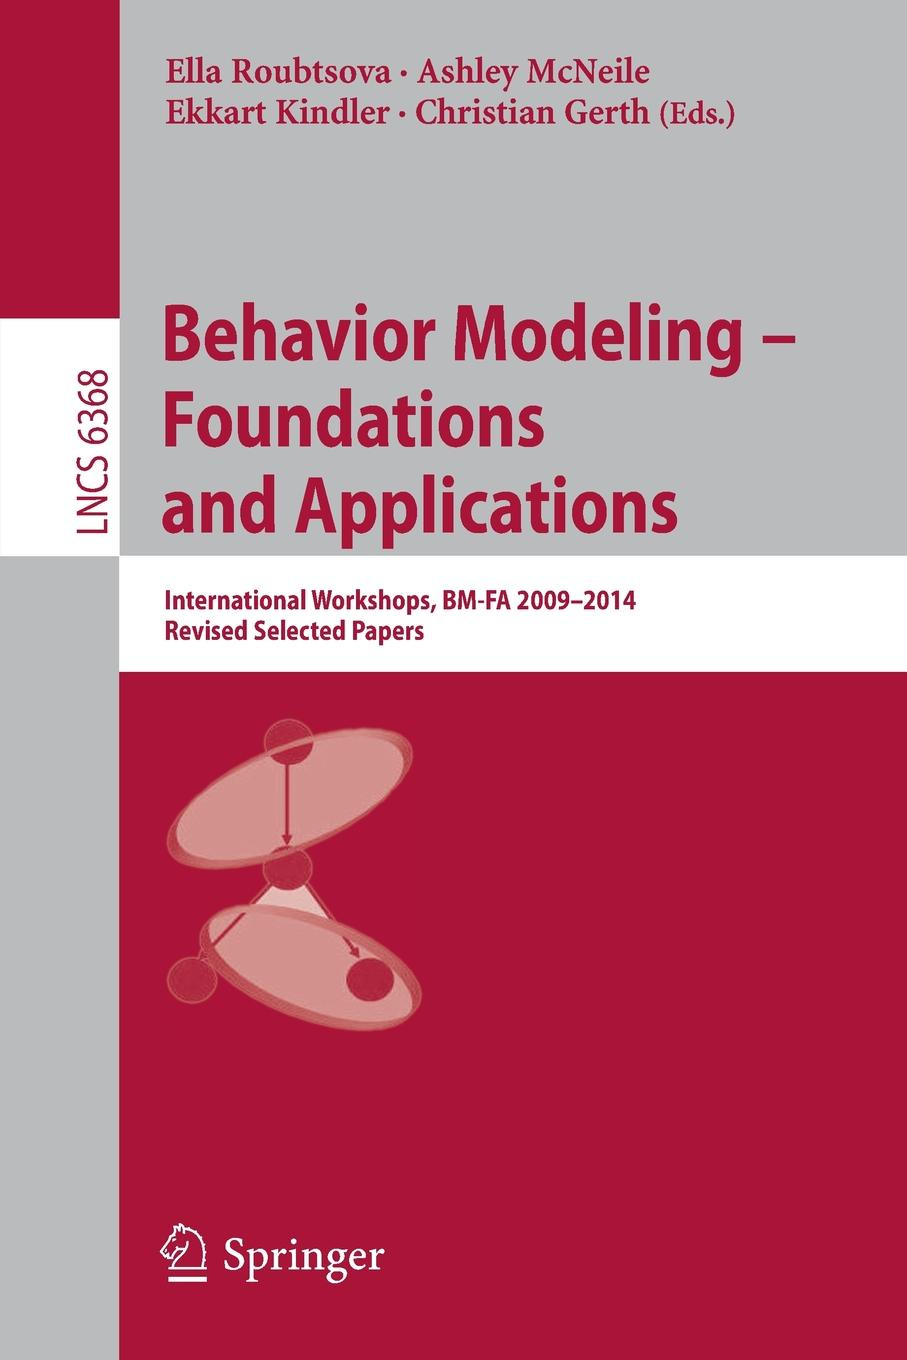 Behavior Modeling -- Foundations and Applications. International Workshops, BM-FA 2009-2014, Revised Selected Papers angela henderson c family theories foundations and applications